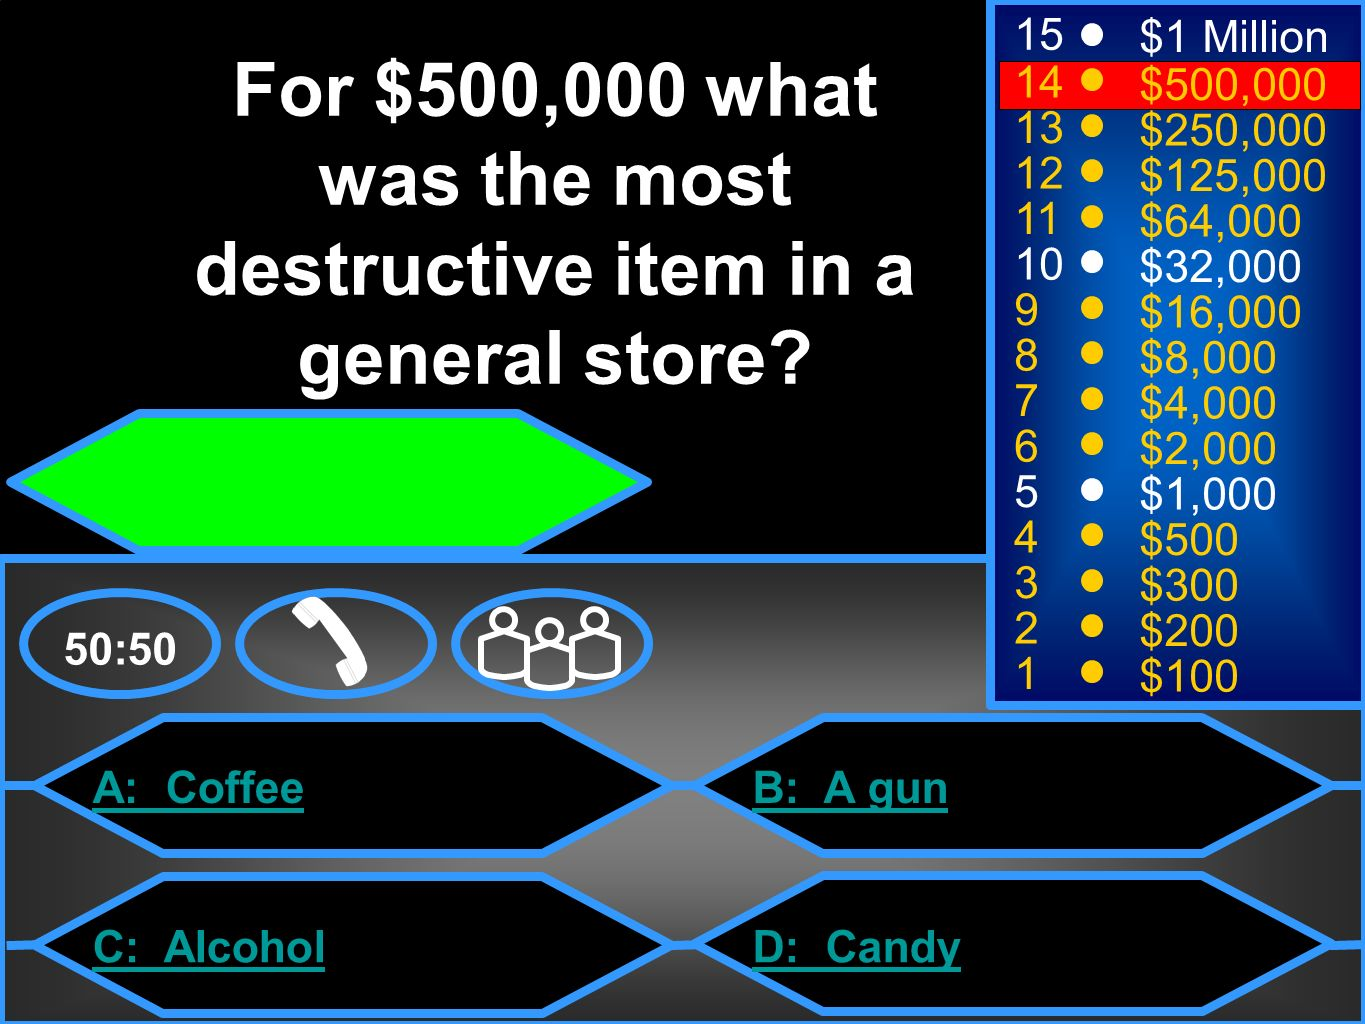 A: Coffee C: Alcohol B: A gun D: Candy 50:50 15 14 13 12 11 10 9 8 7 6 5 4 3 2 1 $1 Million $500,000 $250,000 $125,000 $64,000 $32,000 $16,000 $8,000 $4,000 $2,000 $1,000 $500 $300 $200 $100 For $500,000 what was the most destructive item in a general store